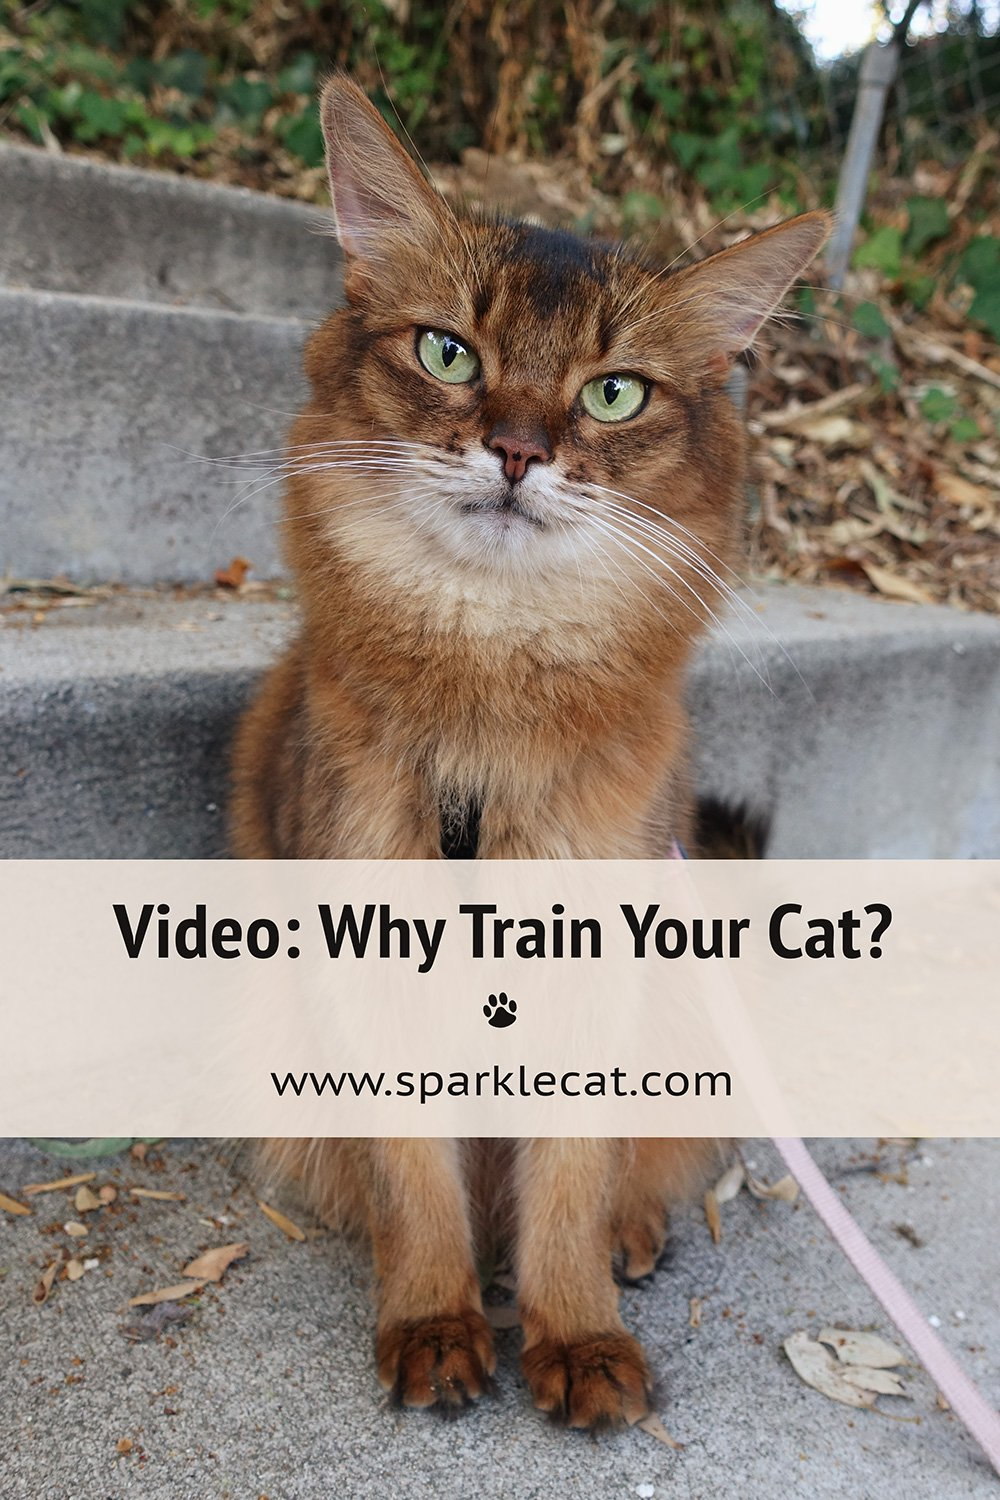 Why Train Your Cat - a Video